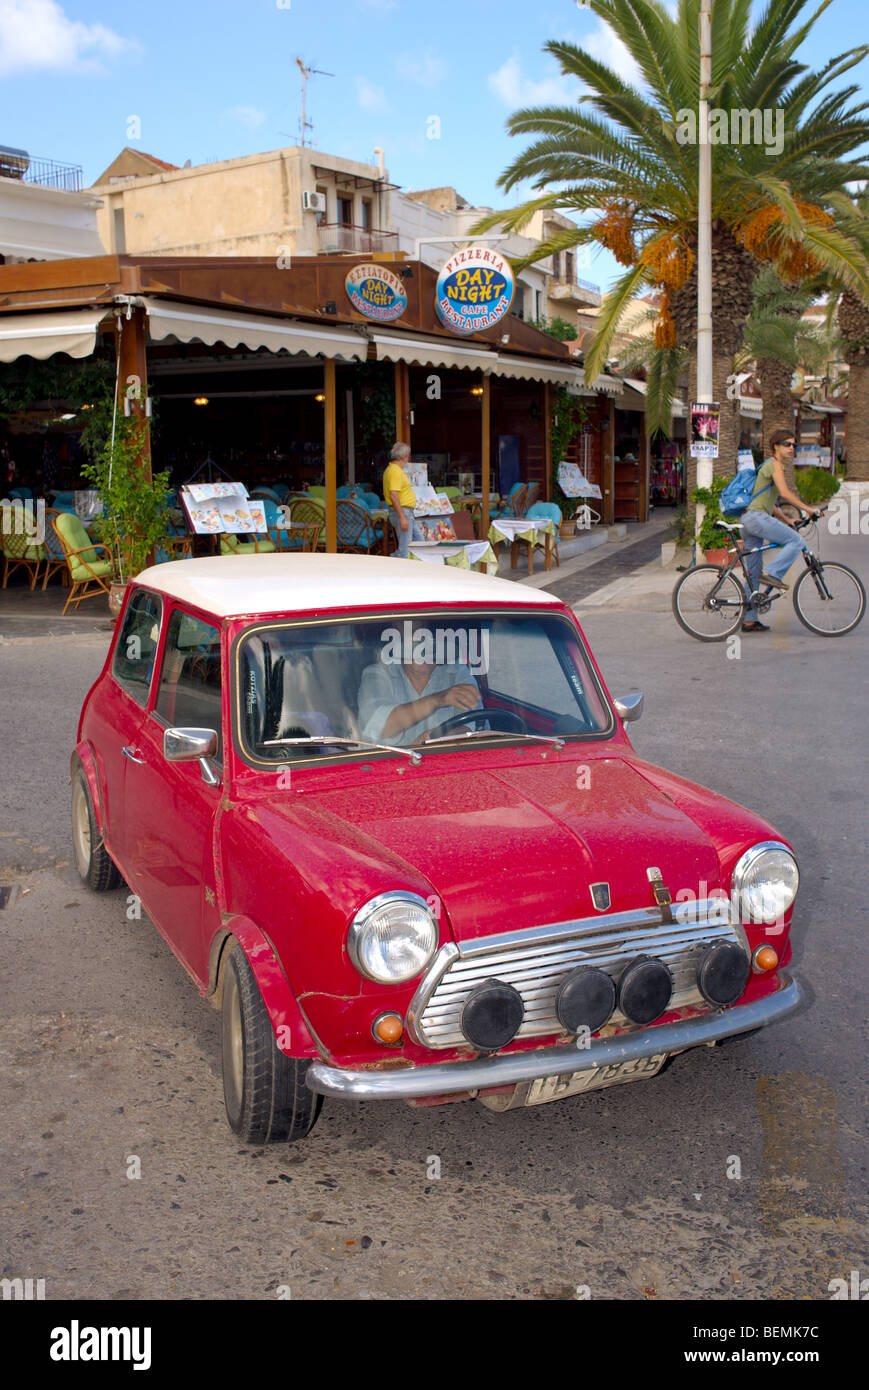 Classic red mini with white roof outside taverna and cyclist in distance Rethymnon Crete Greece - Stock Image